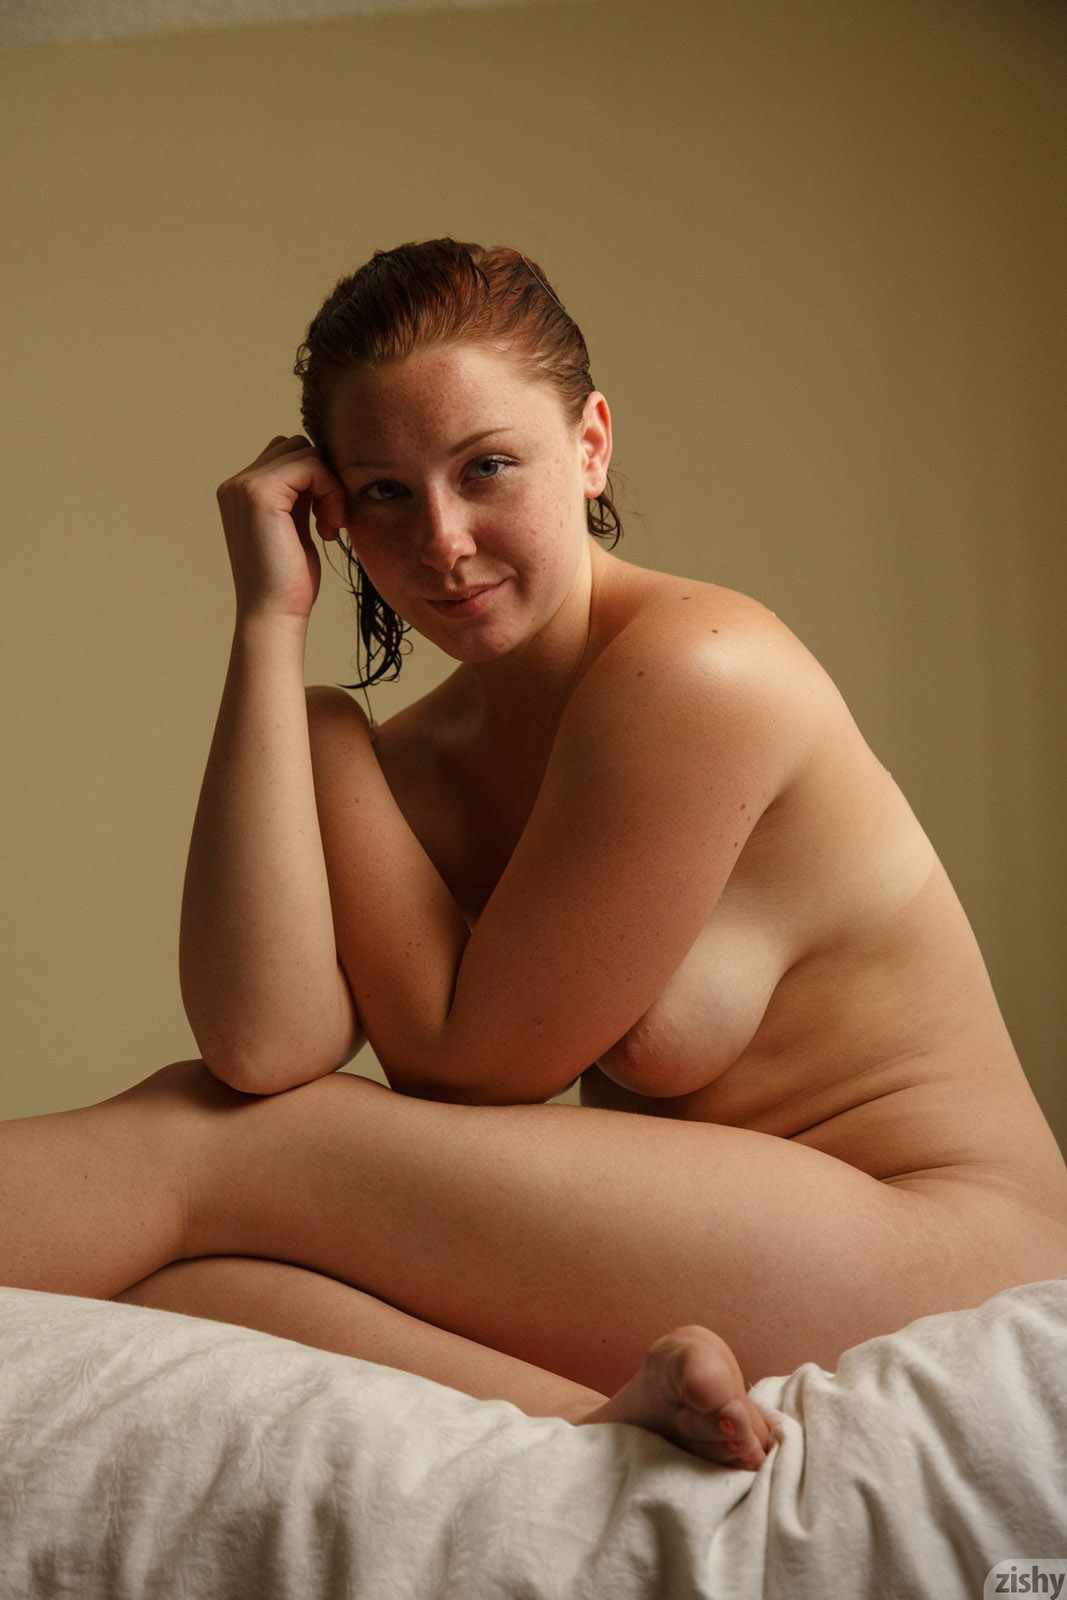 thick and beautiful nude women